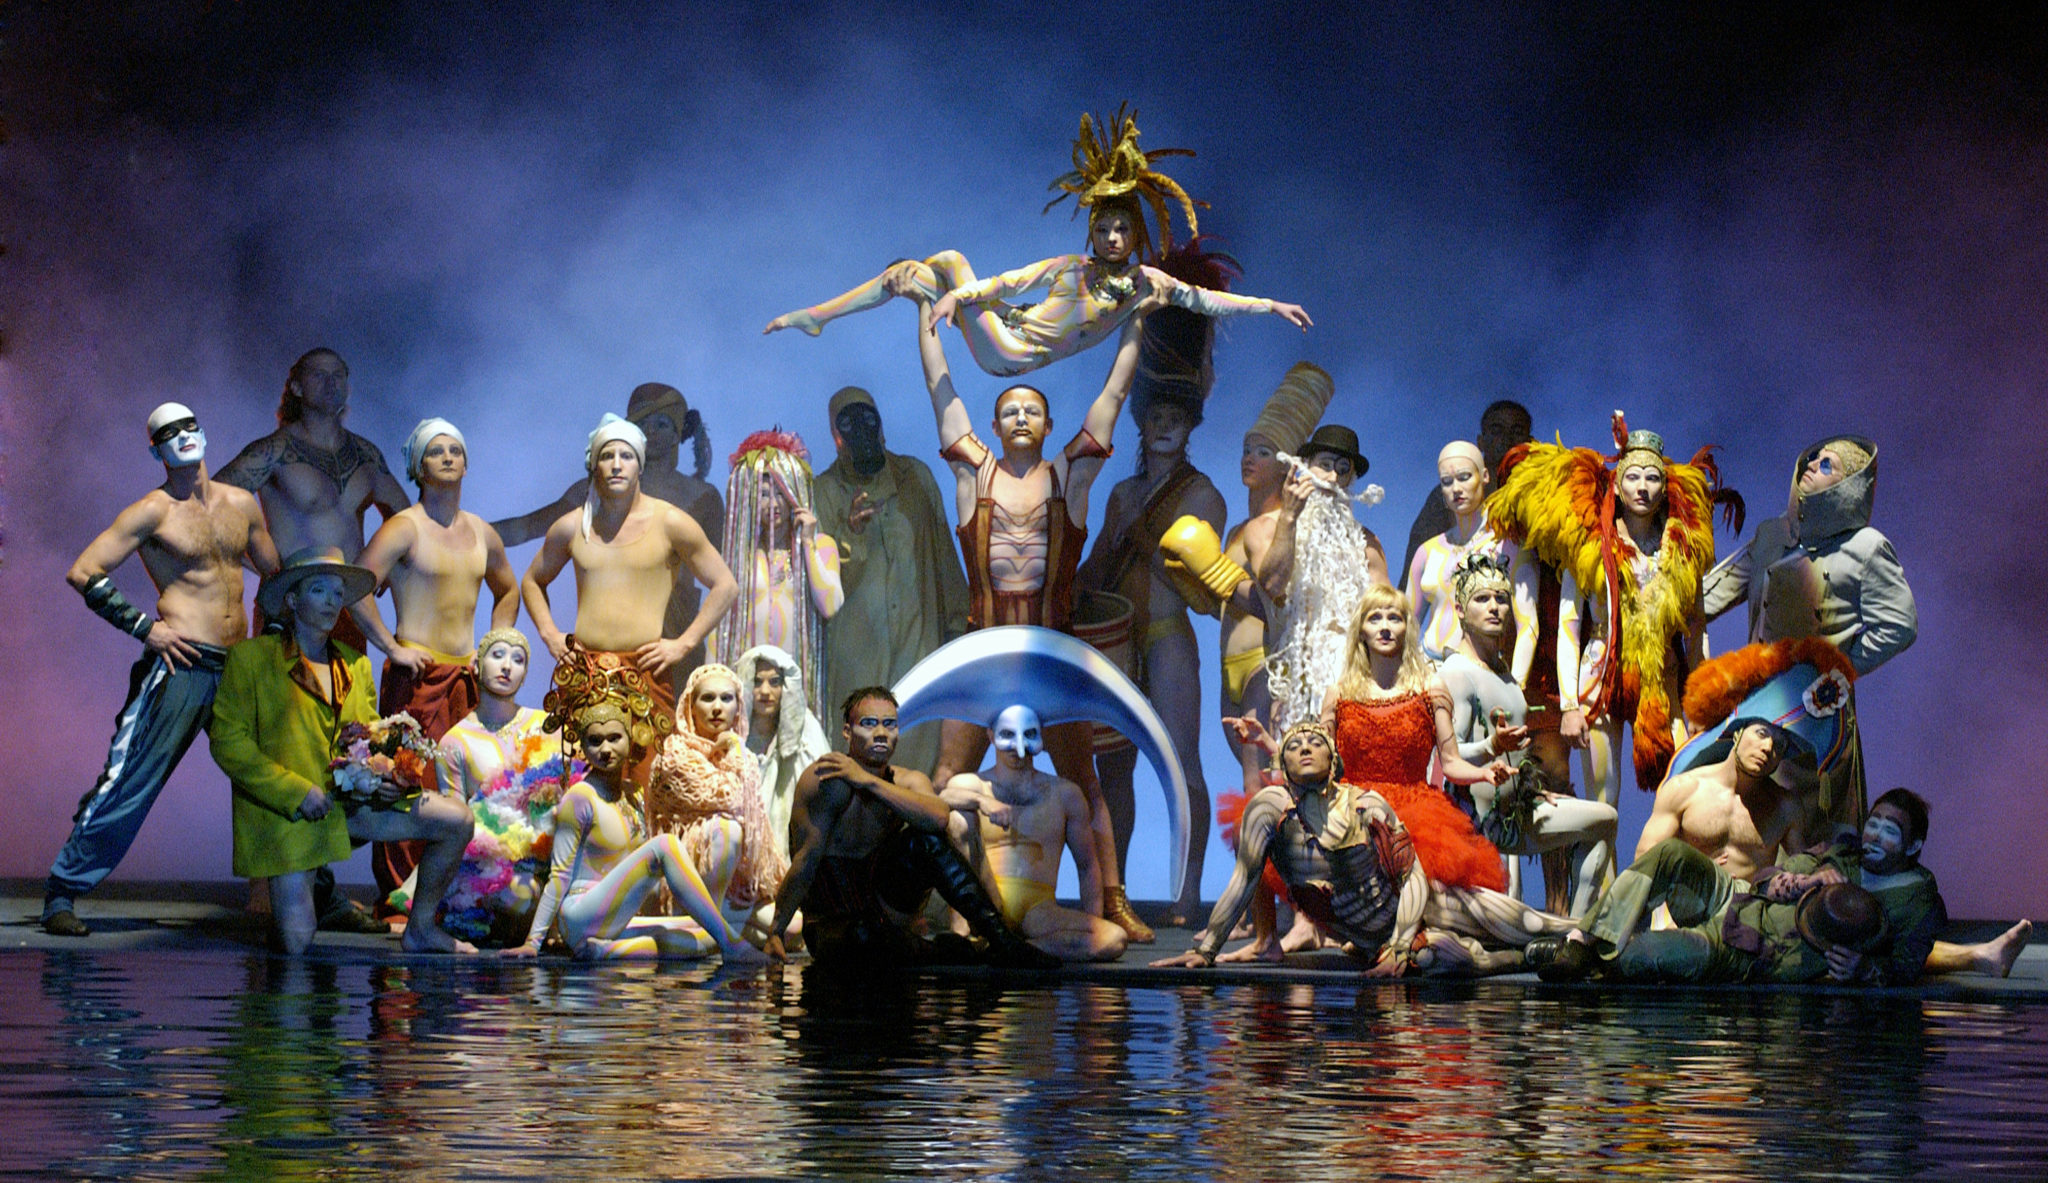 Enjoy Celebrity Radio's Best Show Las Vegas 2016 O Cirque Du Soleil Bellagio…. 'The Best Show Las Vegas' is a tough call as this town is […]